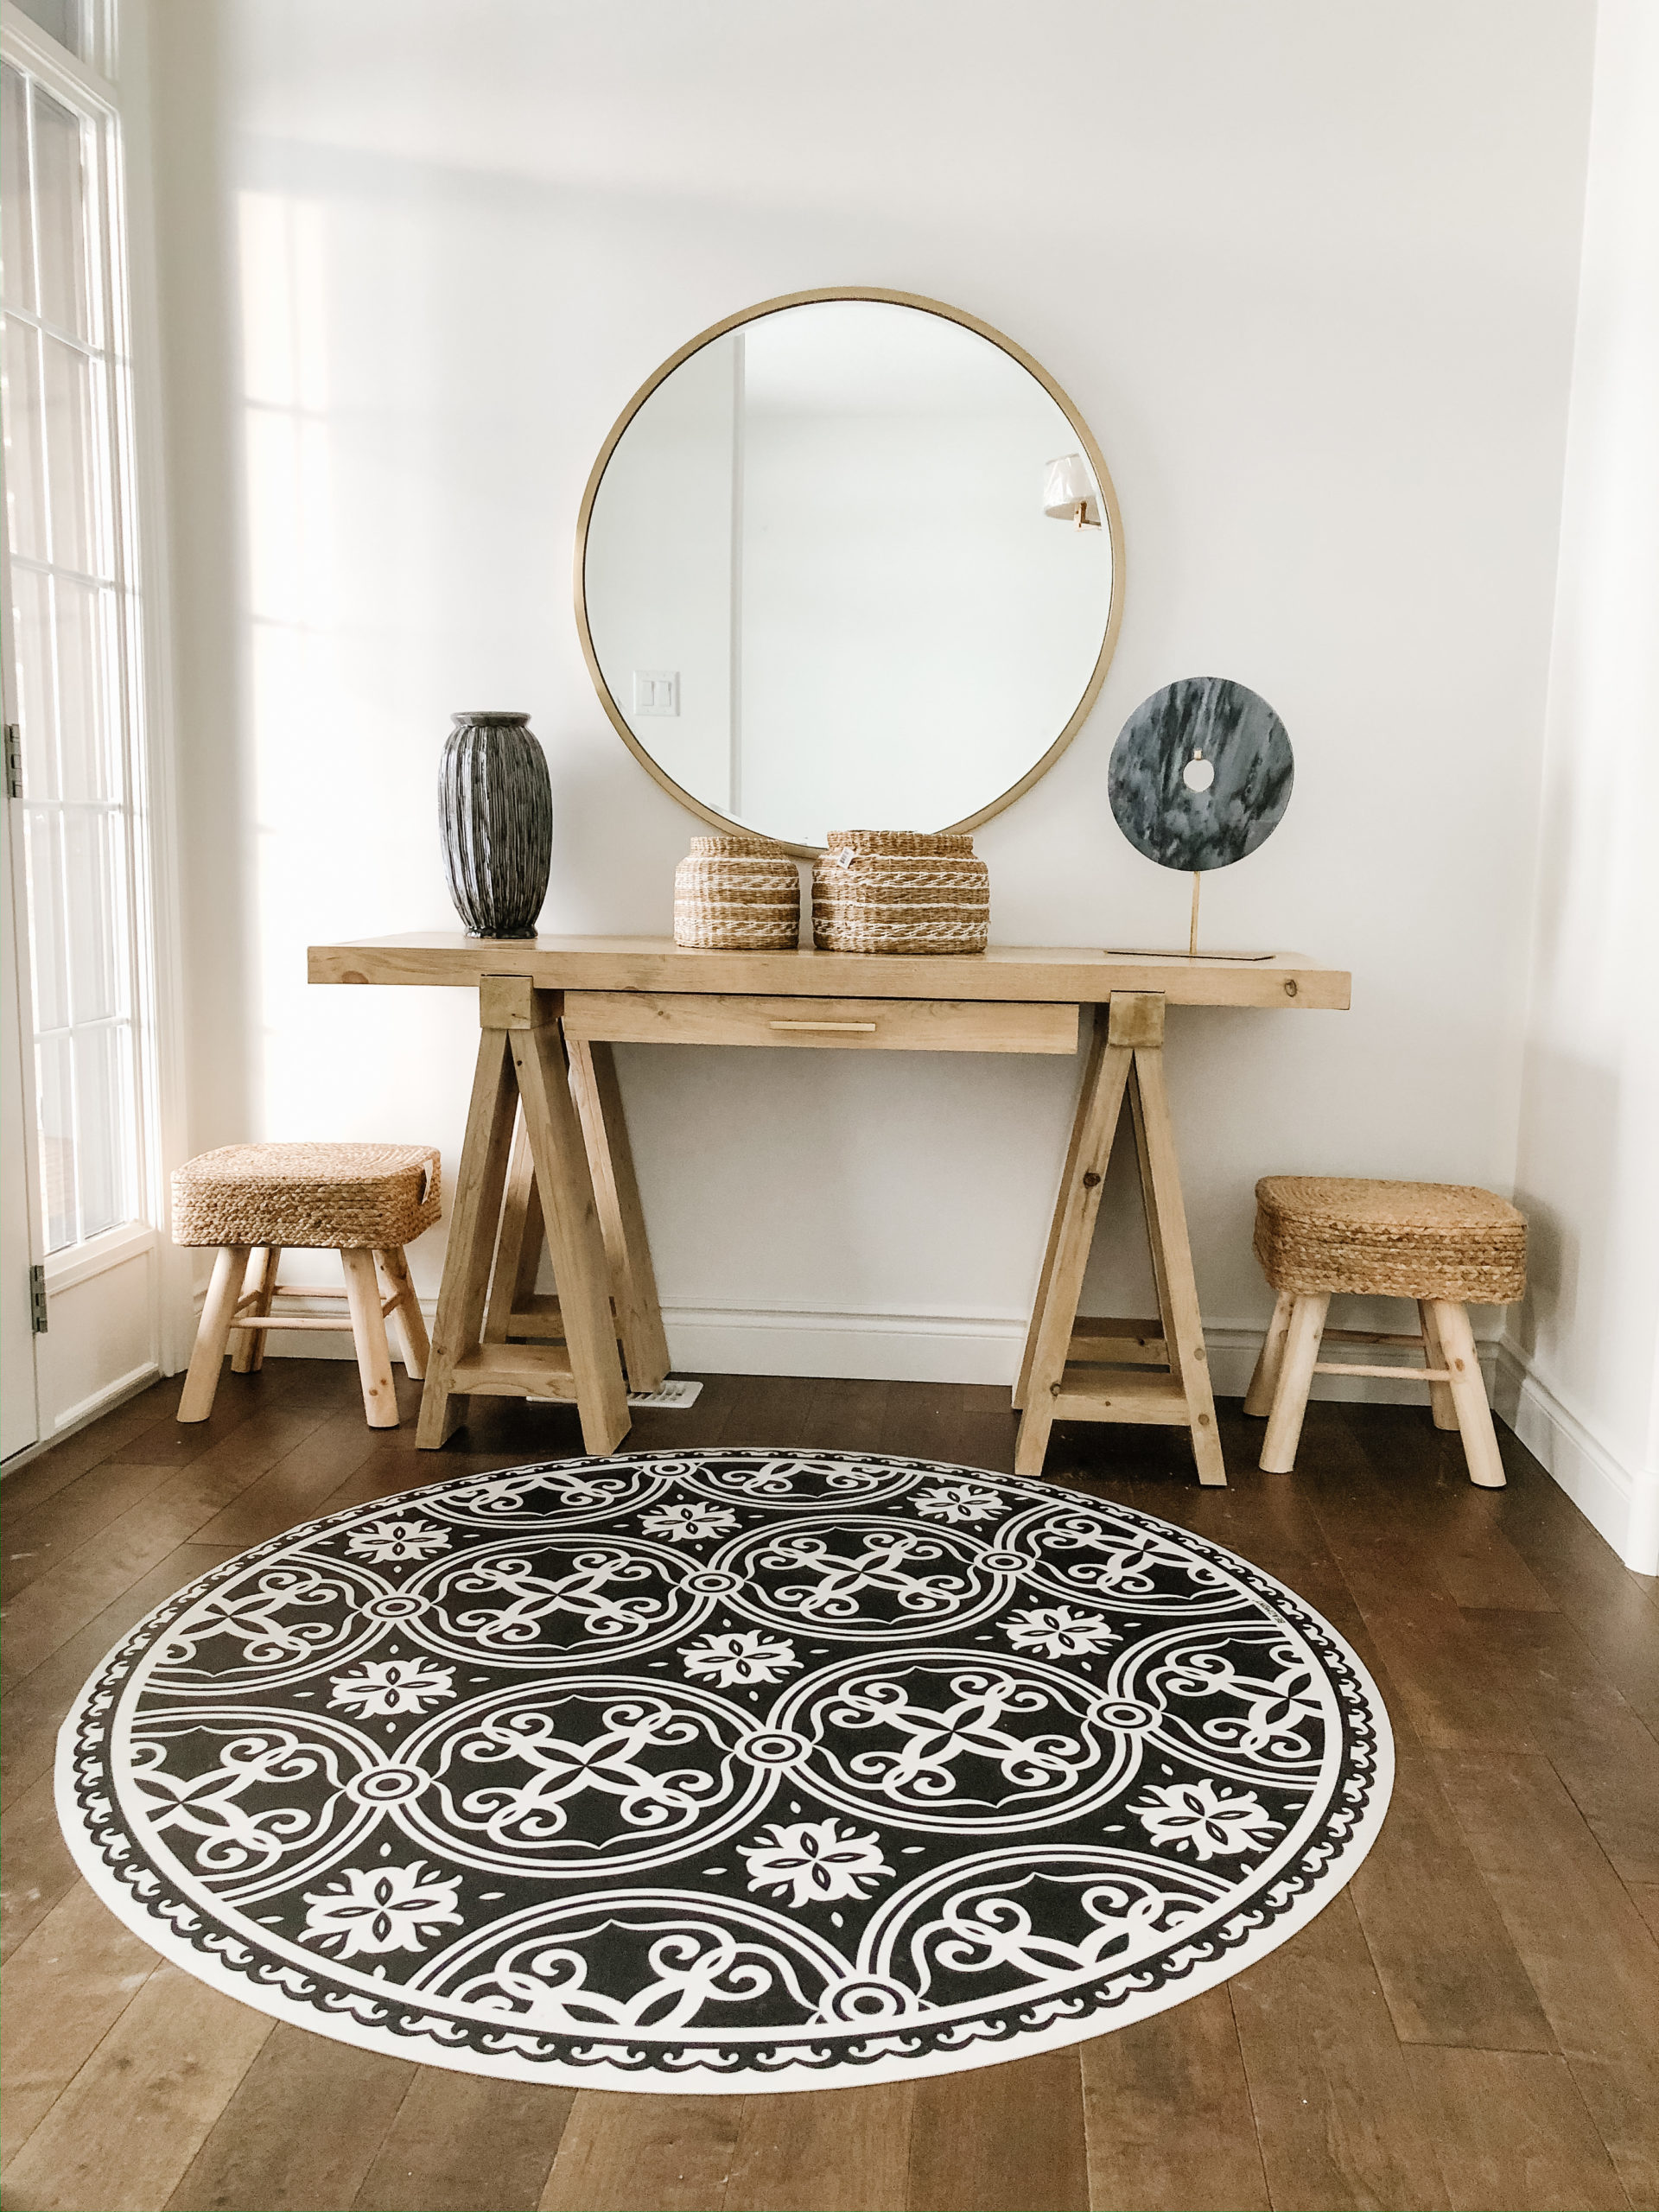 entrance way featuring hallway table and vinyl mat